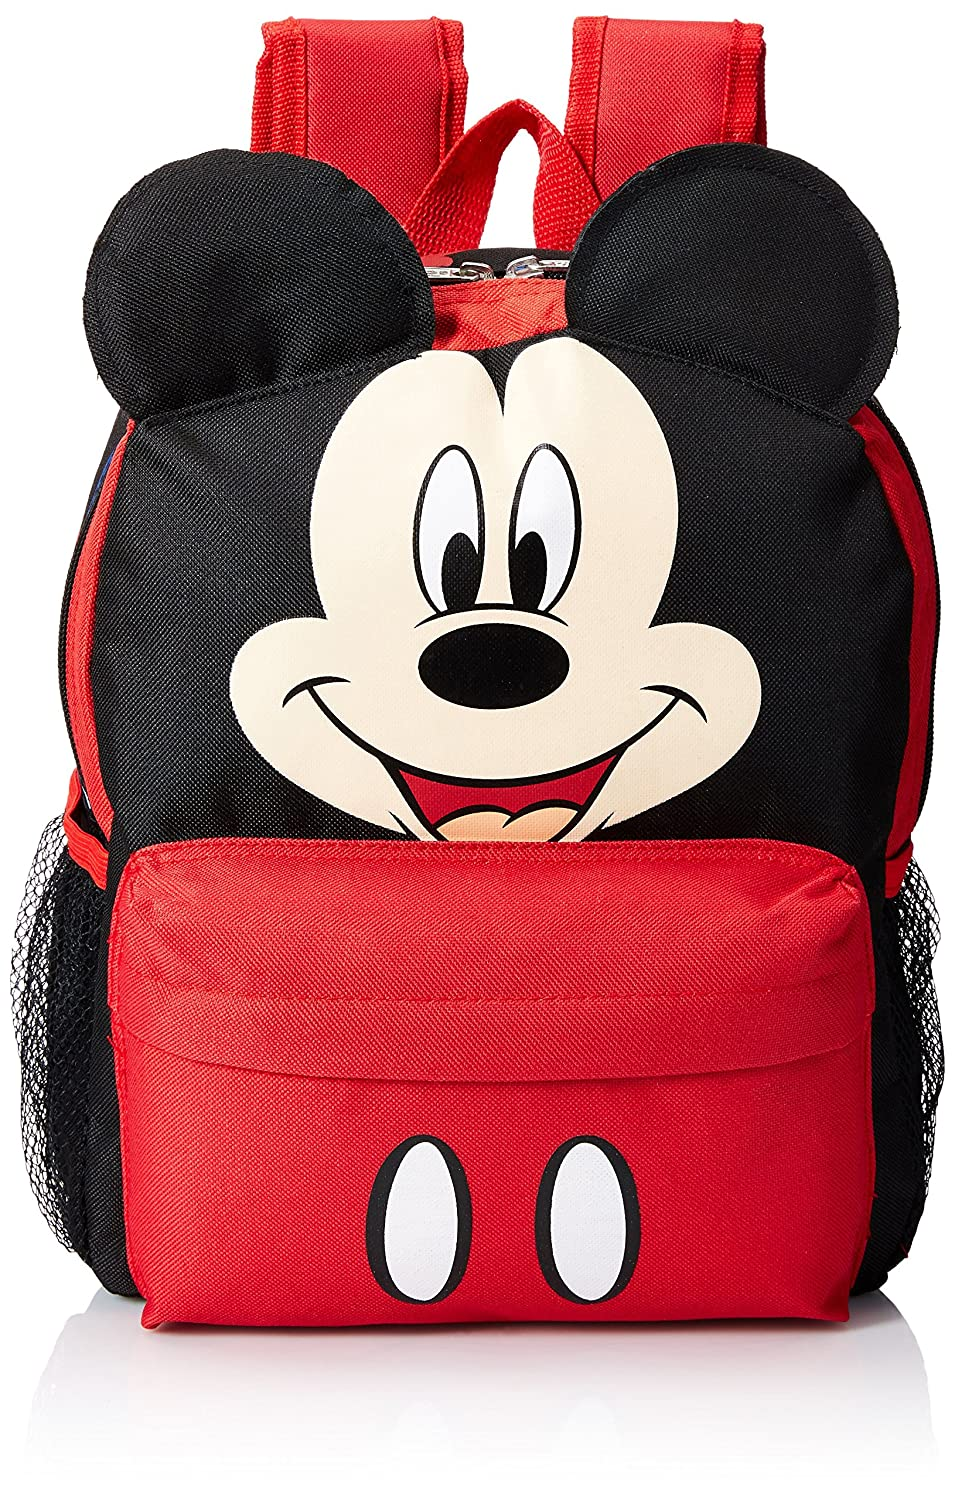 Small Backpack - Disney - Mickey Mouse Face/Ears New School Bag 628680-3 Ruz